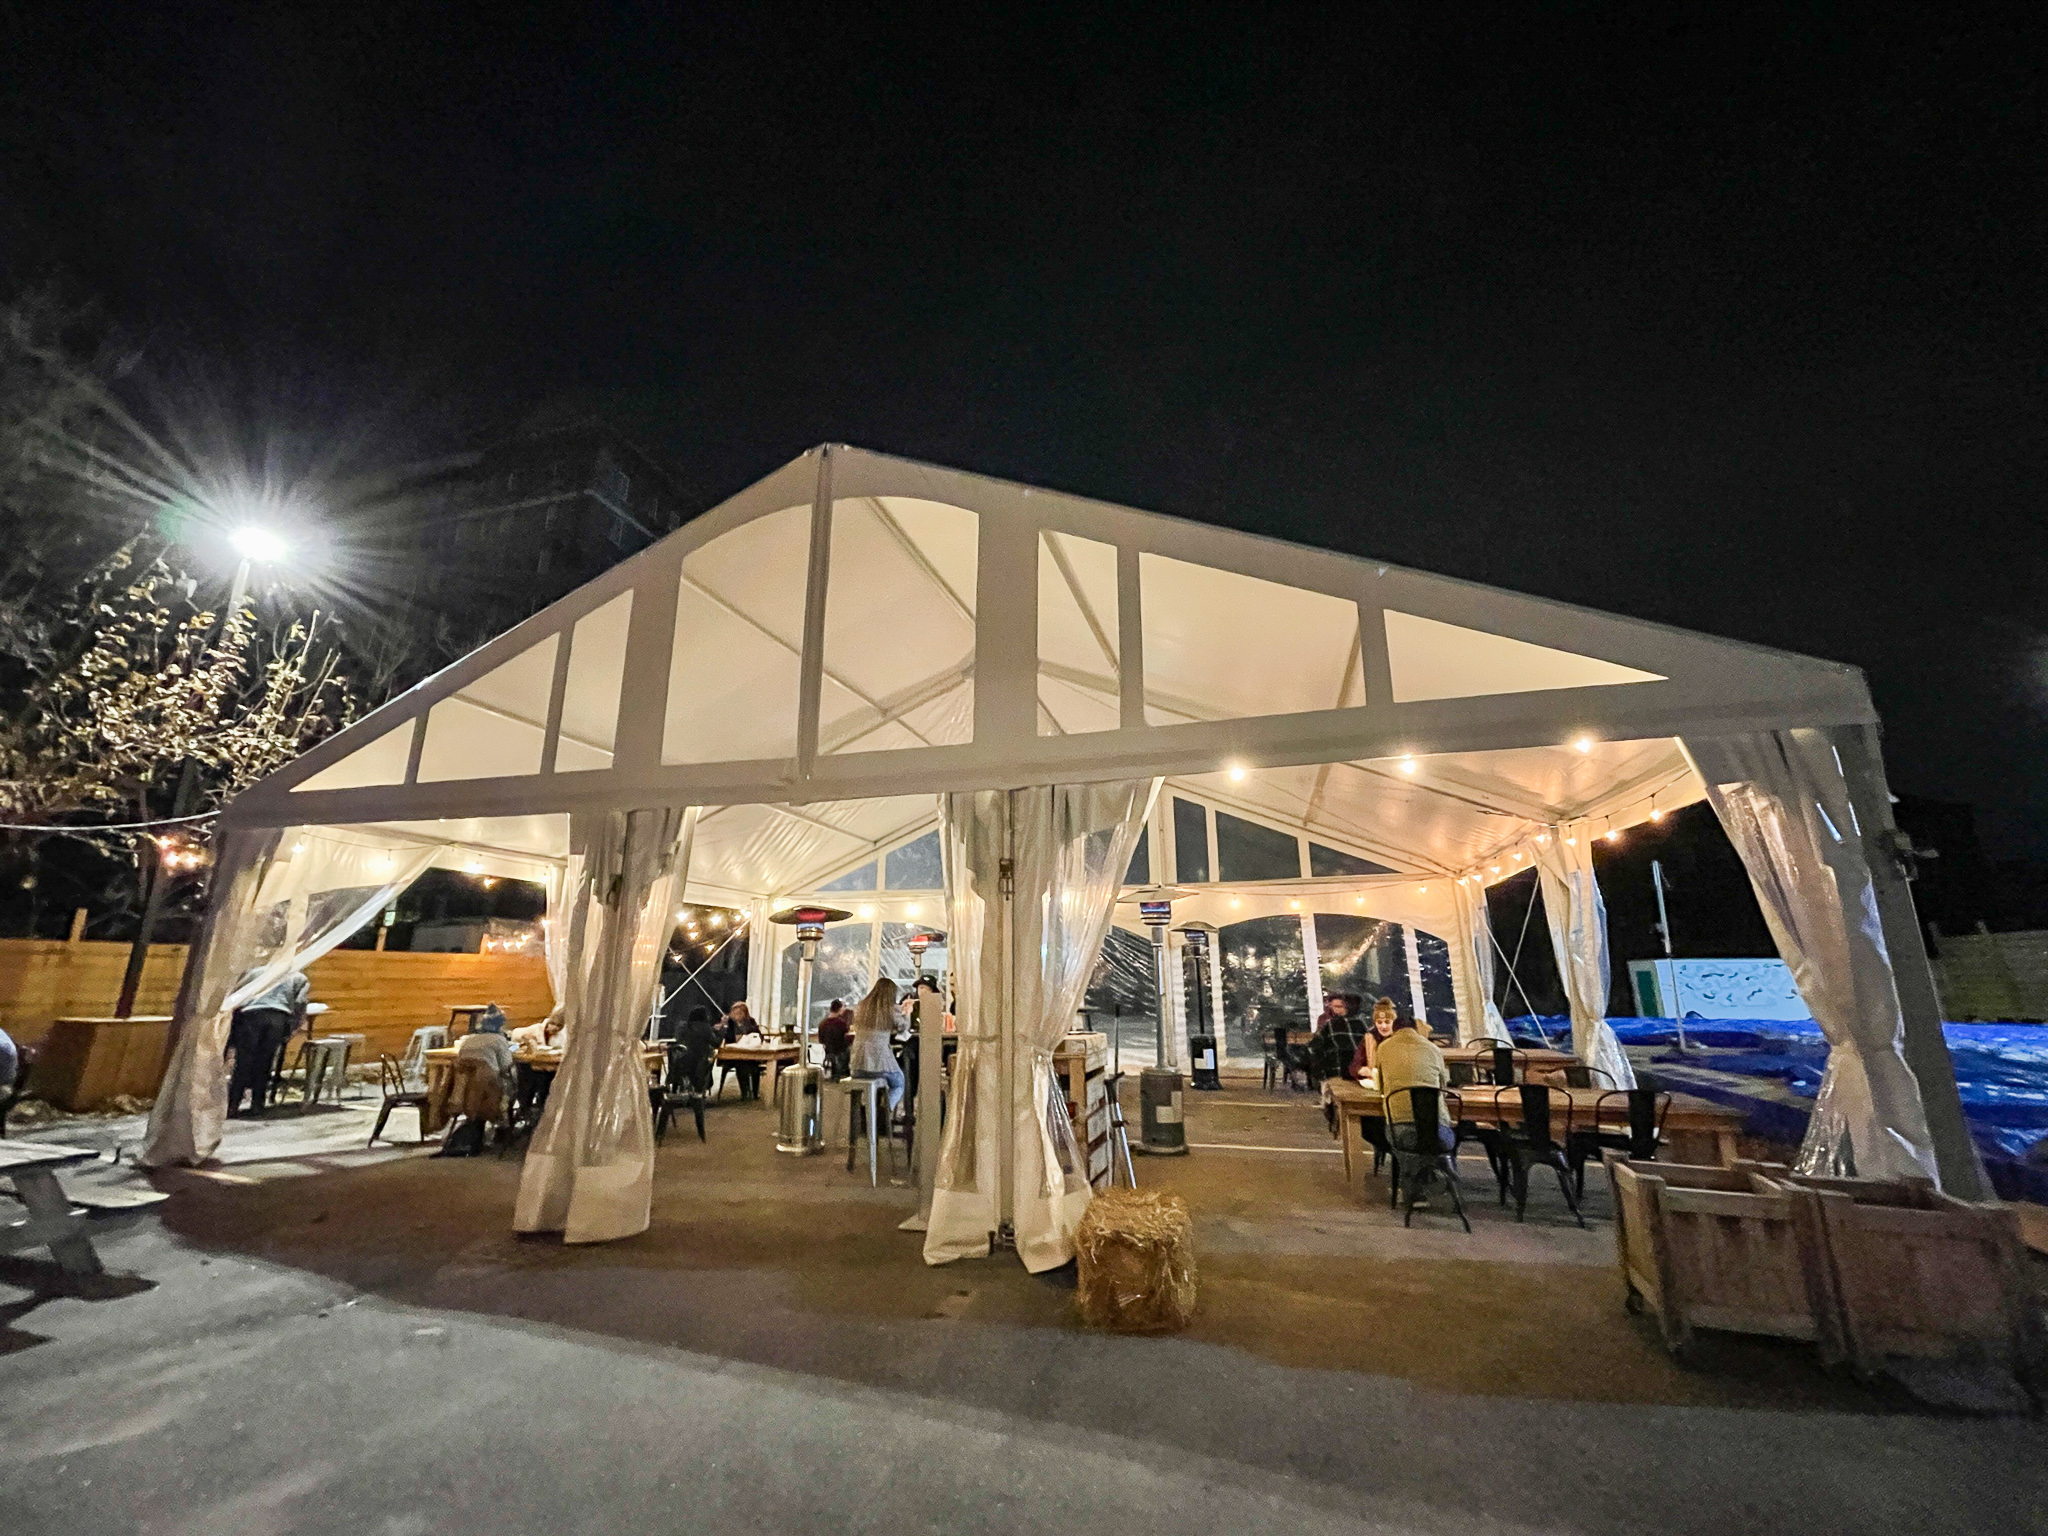 Detroit Shipping Company's outdoor dining set up with a large white tent, heaters, and tables.